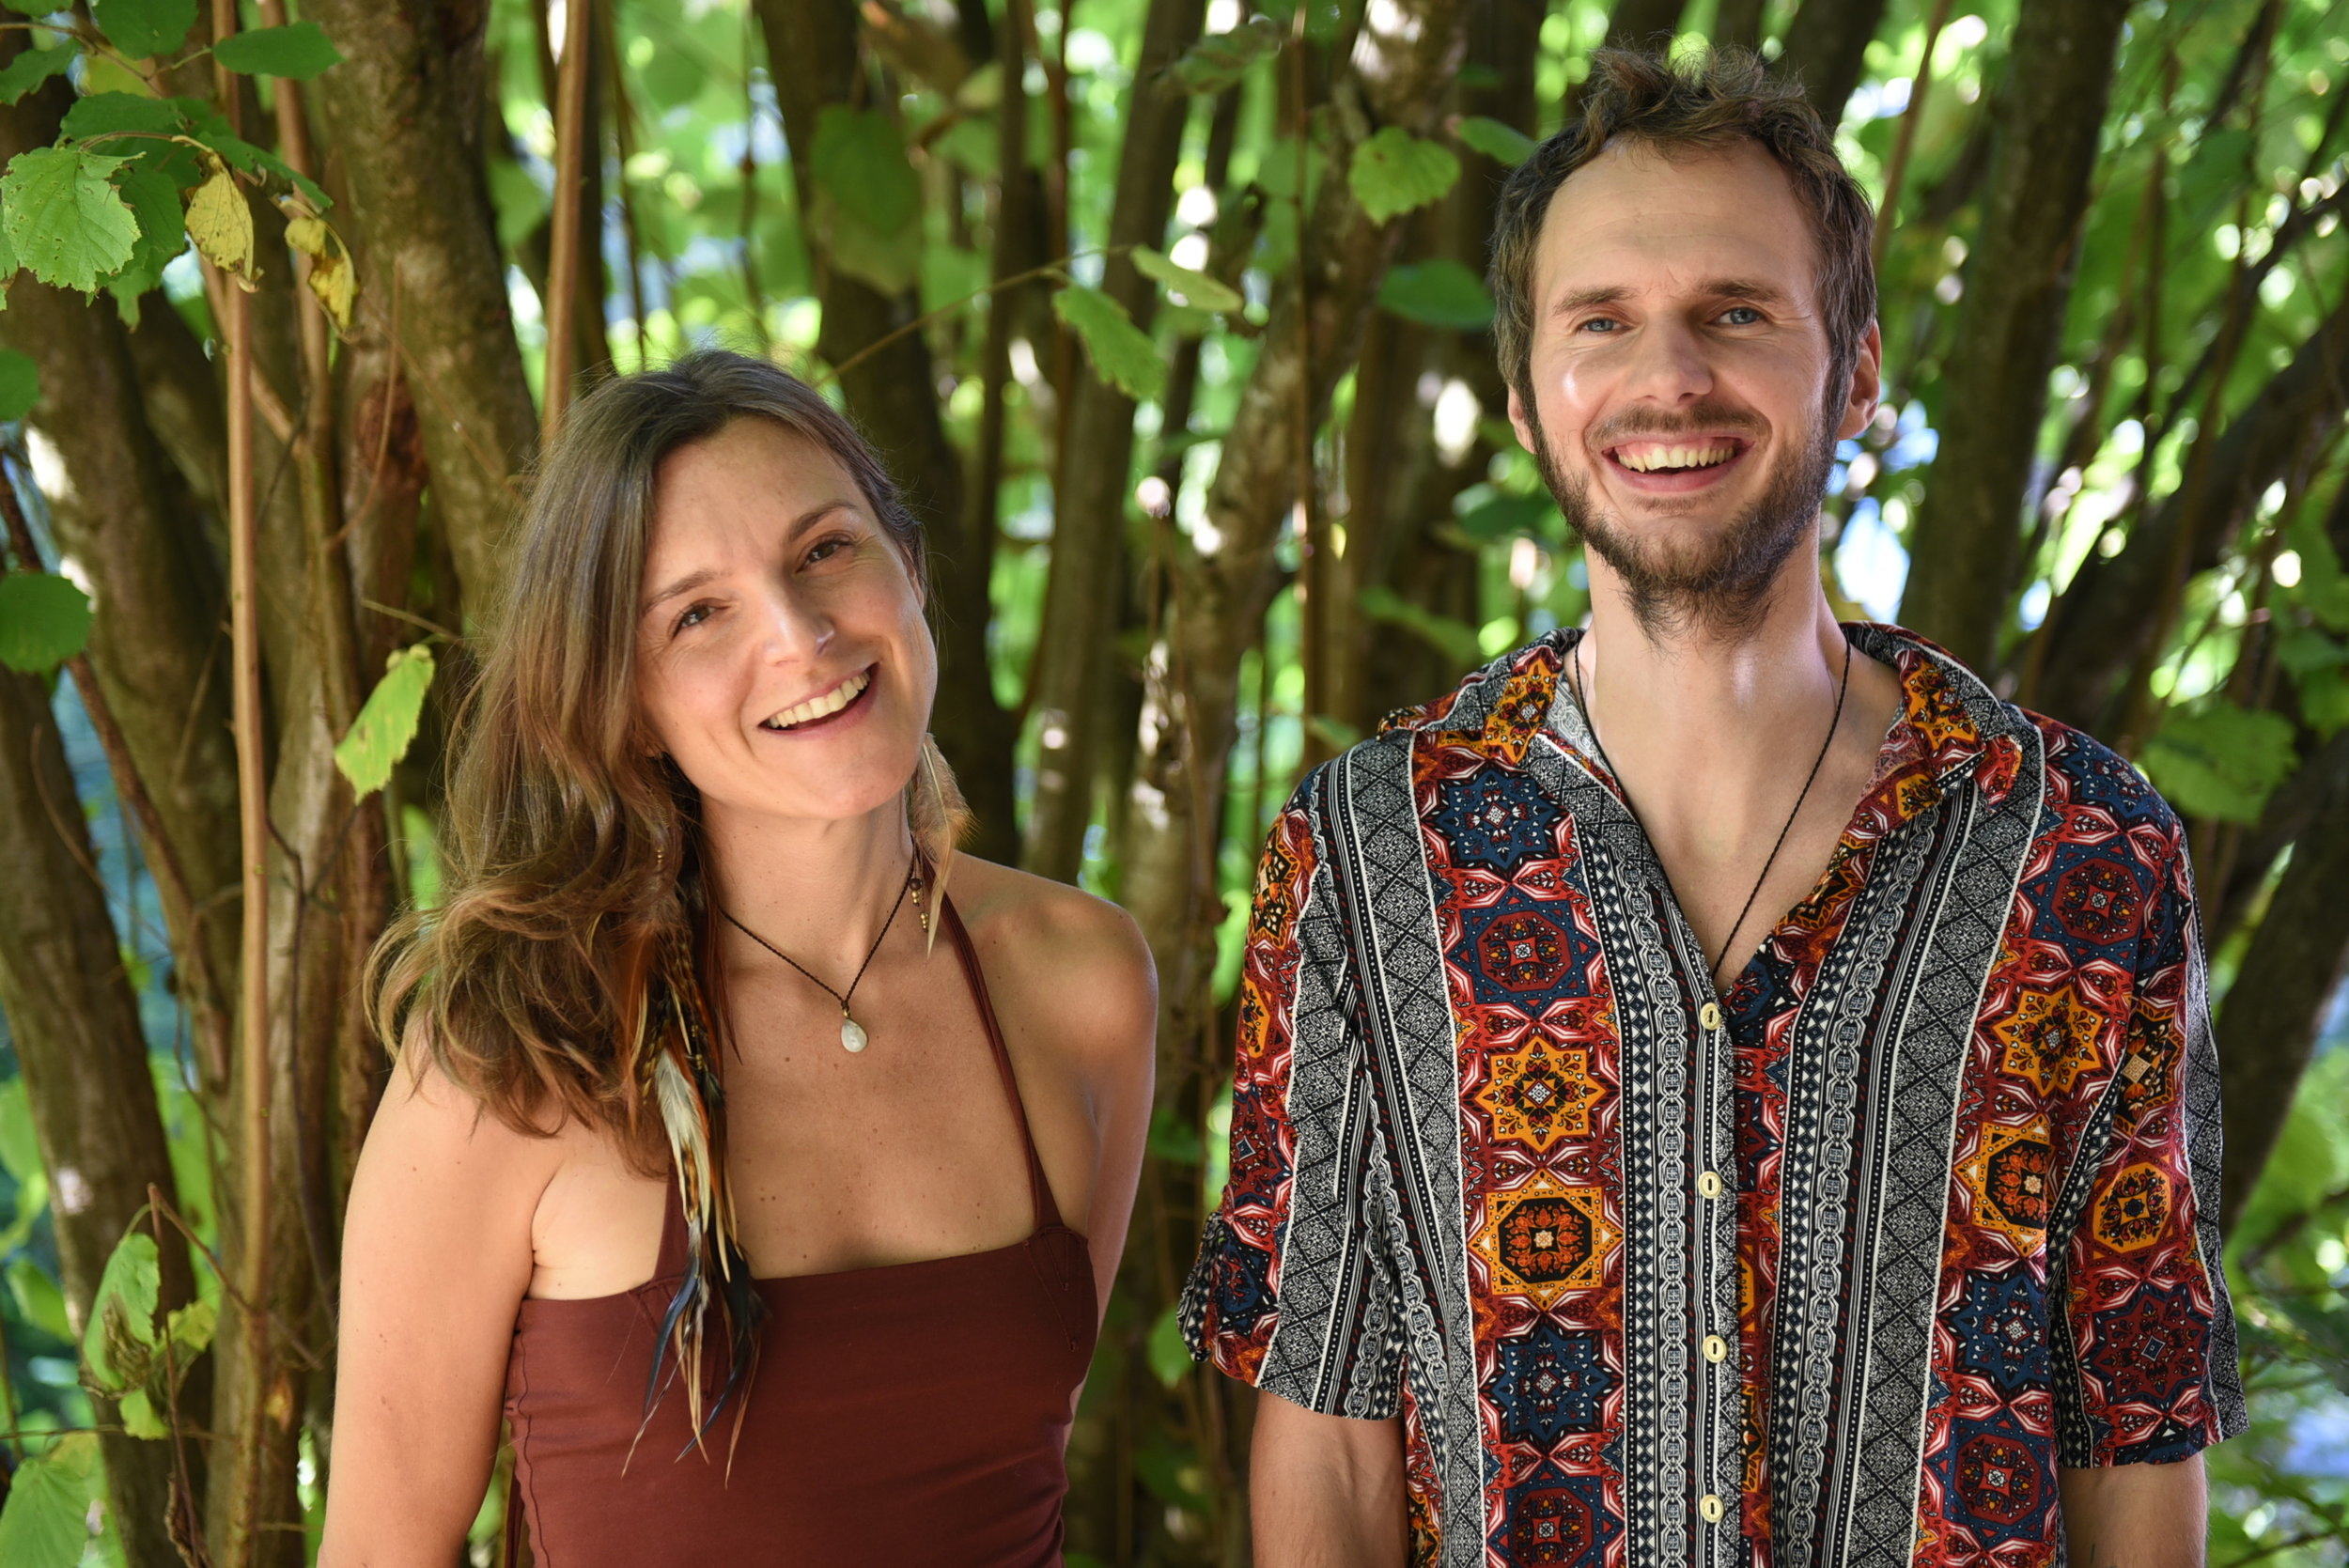 ALUNA - Aluna Ritual Music is the name of the co-creation project between Steffen Kirchhoff and Maywa. They met at a music festival in the jungle of colombia in 2016. The word